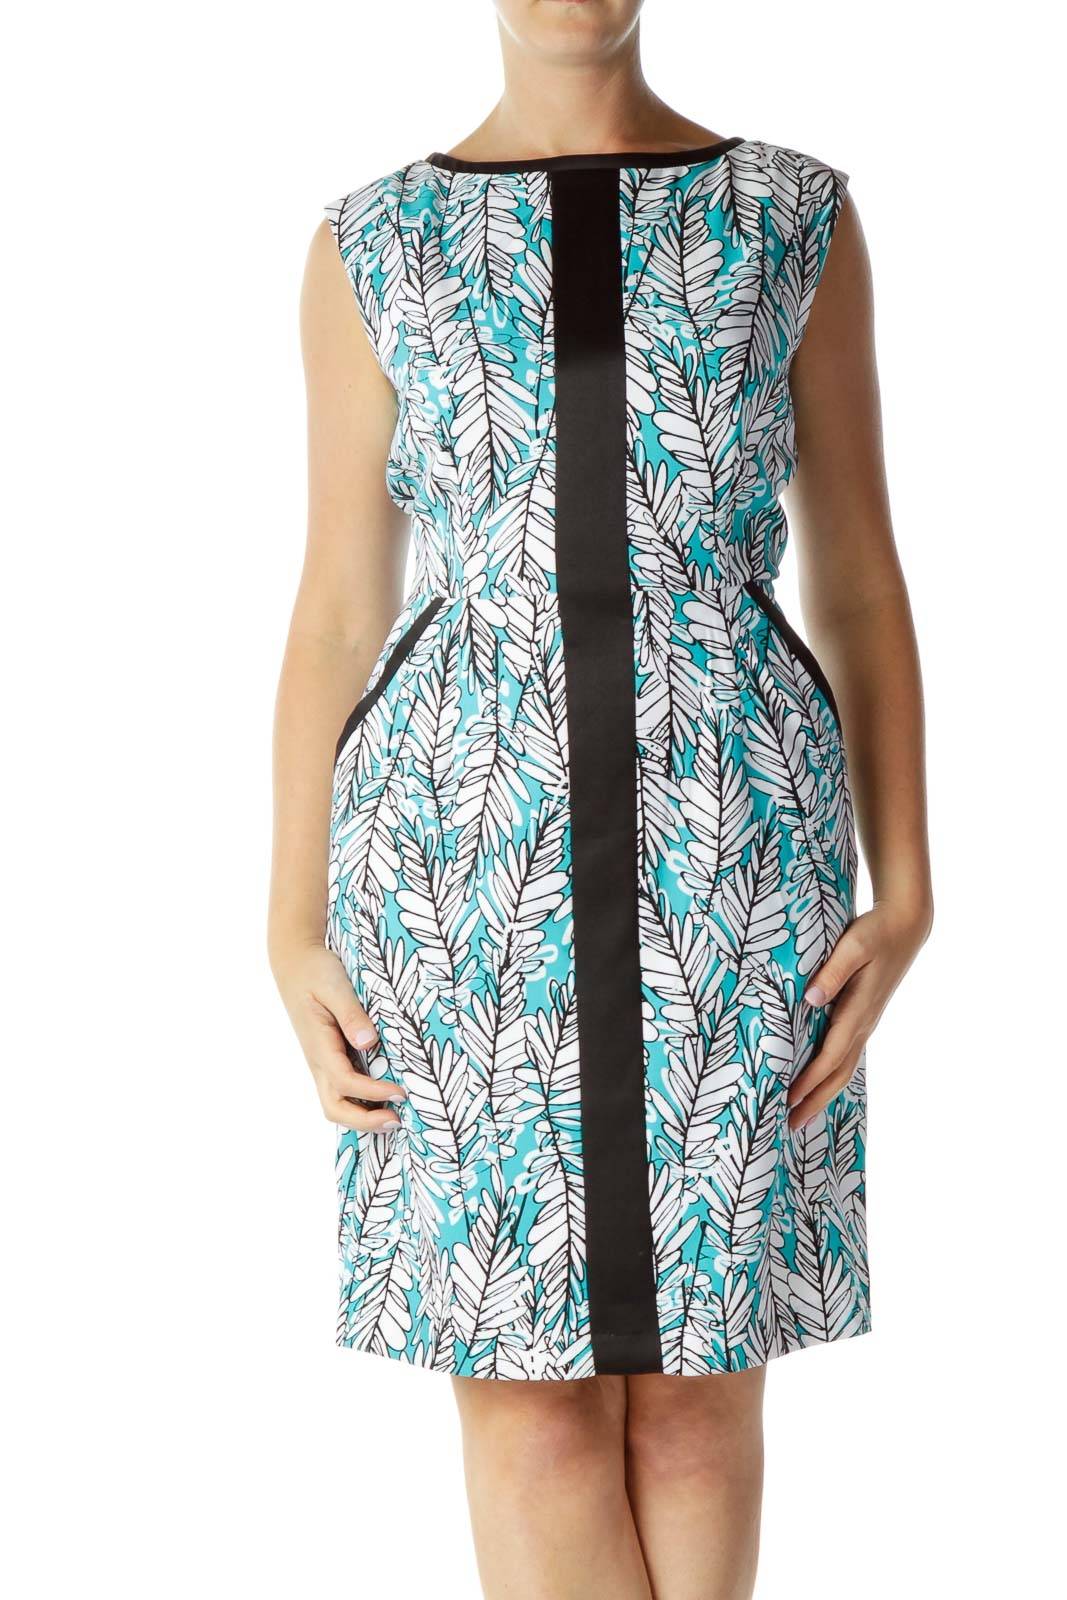 Teal Blue and Black Print Dress